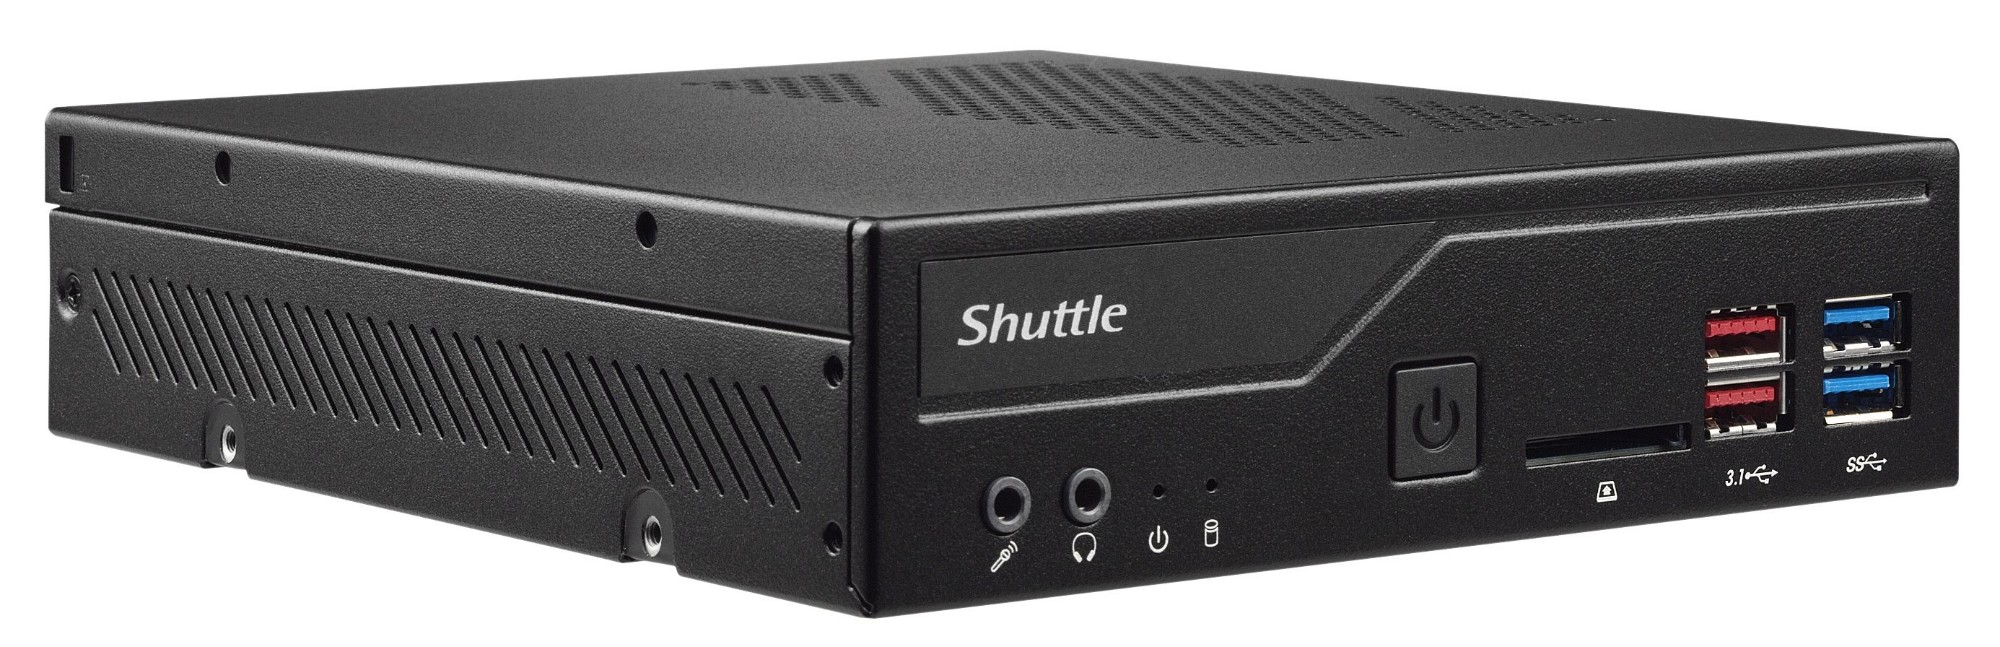 Shuttle XPС slim DH370 PC/workstation barebone Intel® H370 LGA 1151 (Socket H4) 1.3L sized PC Blac